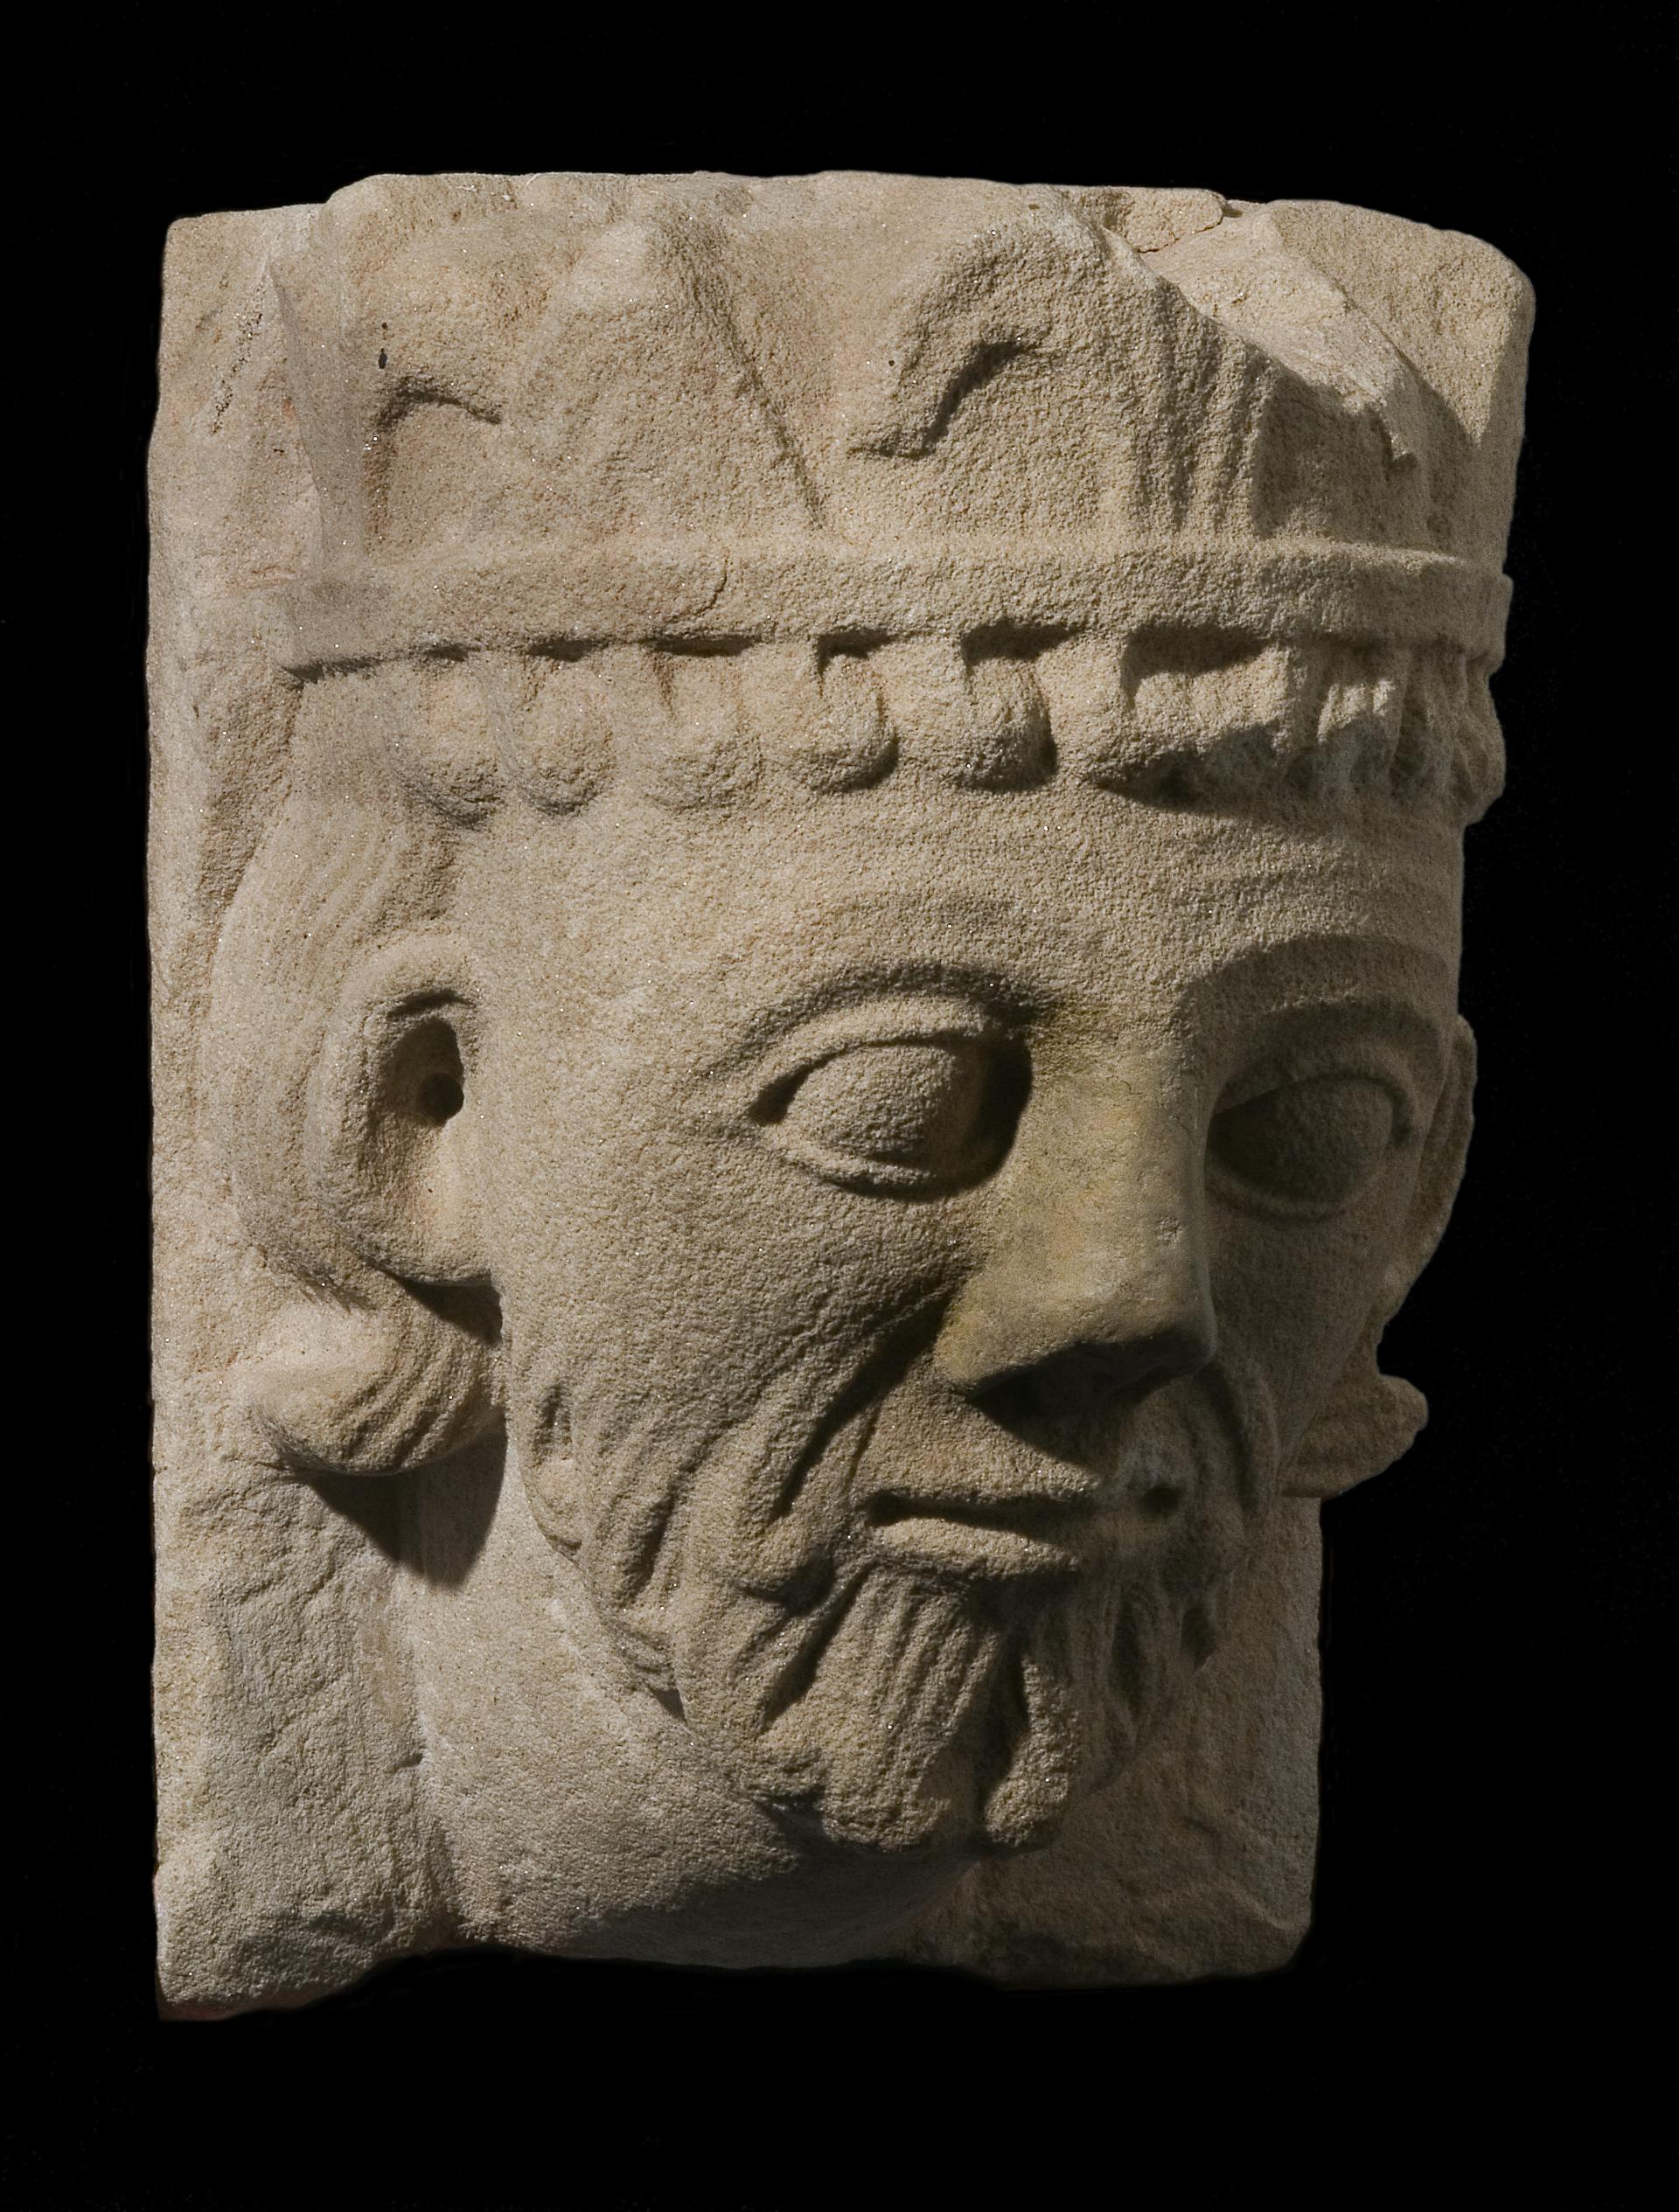 Medieval stone carved head collections online national museum